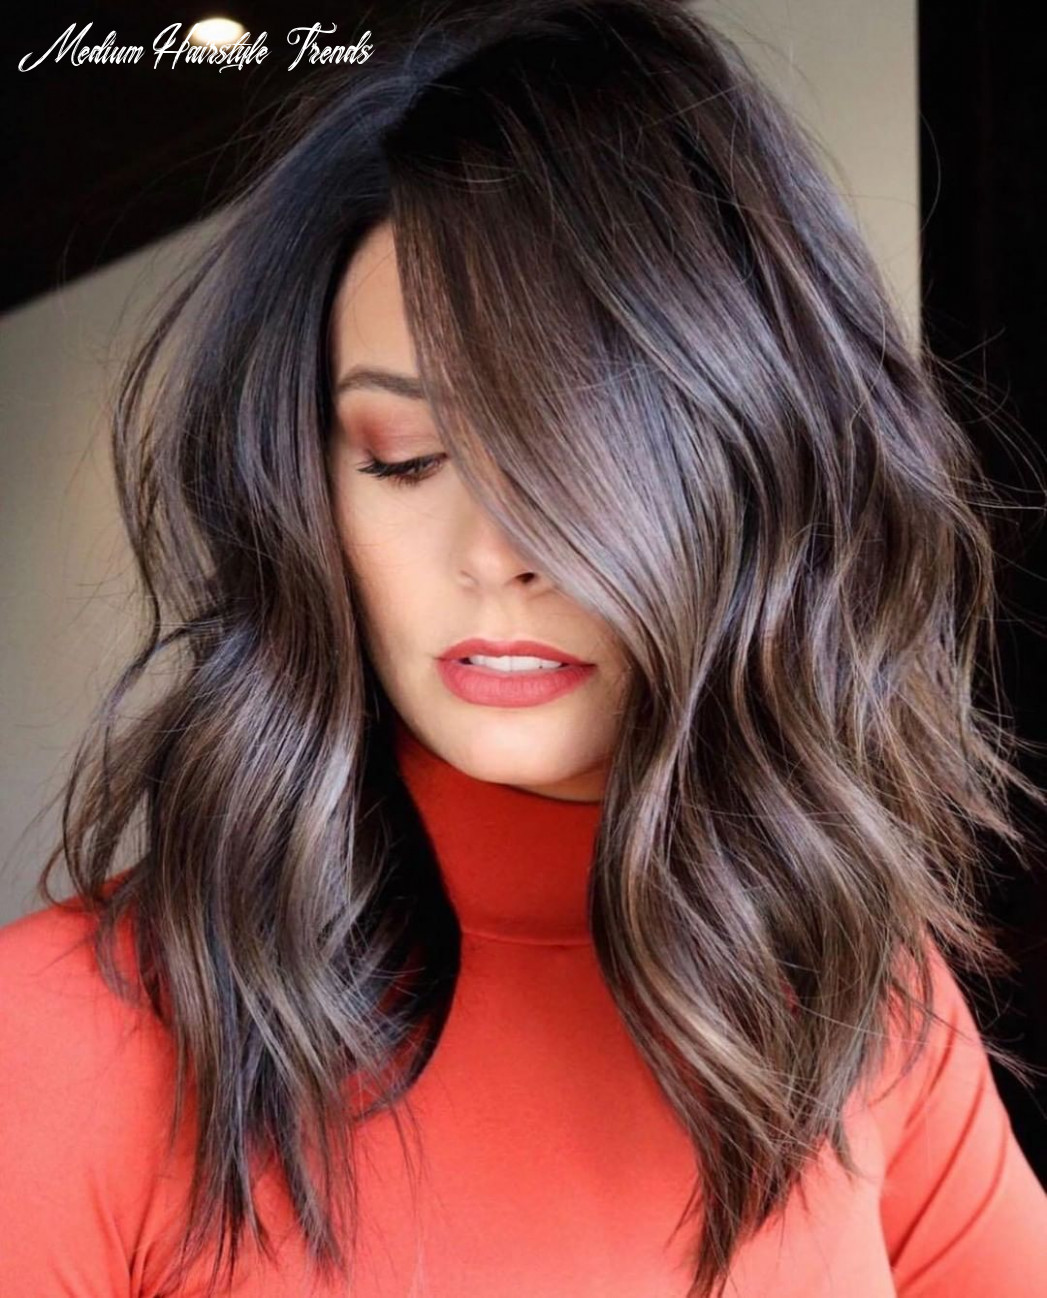 Spring 8 hair trends: the 8 prettiest looks to copy | brown